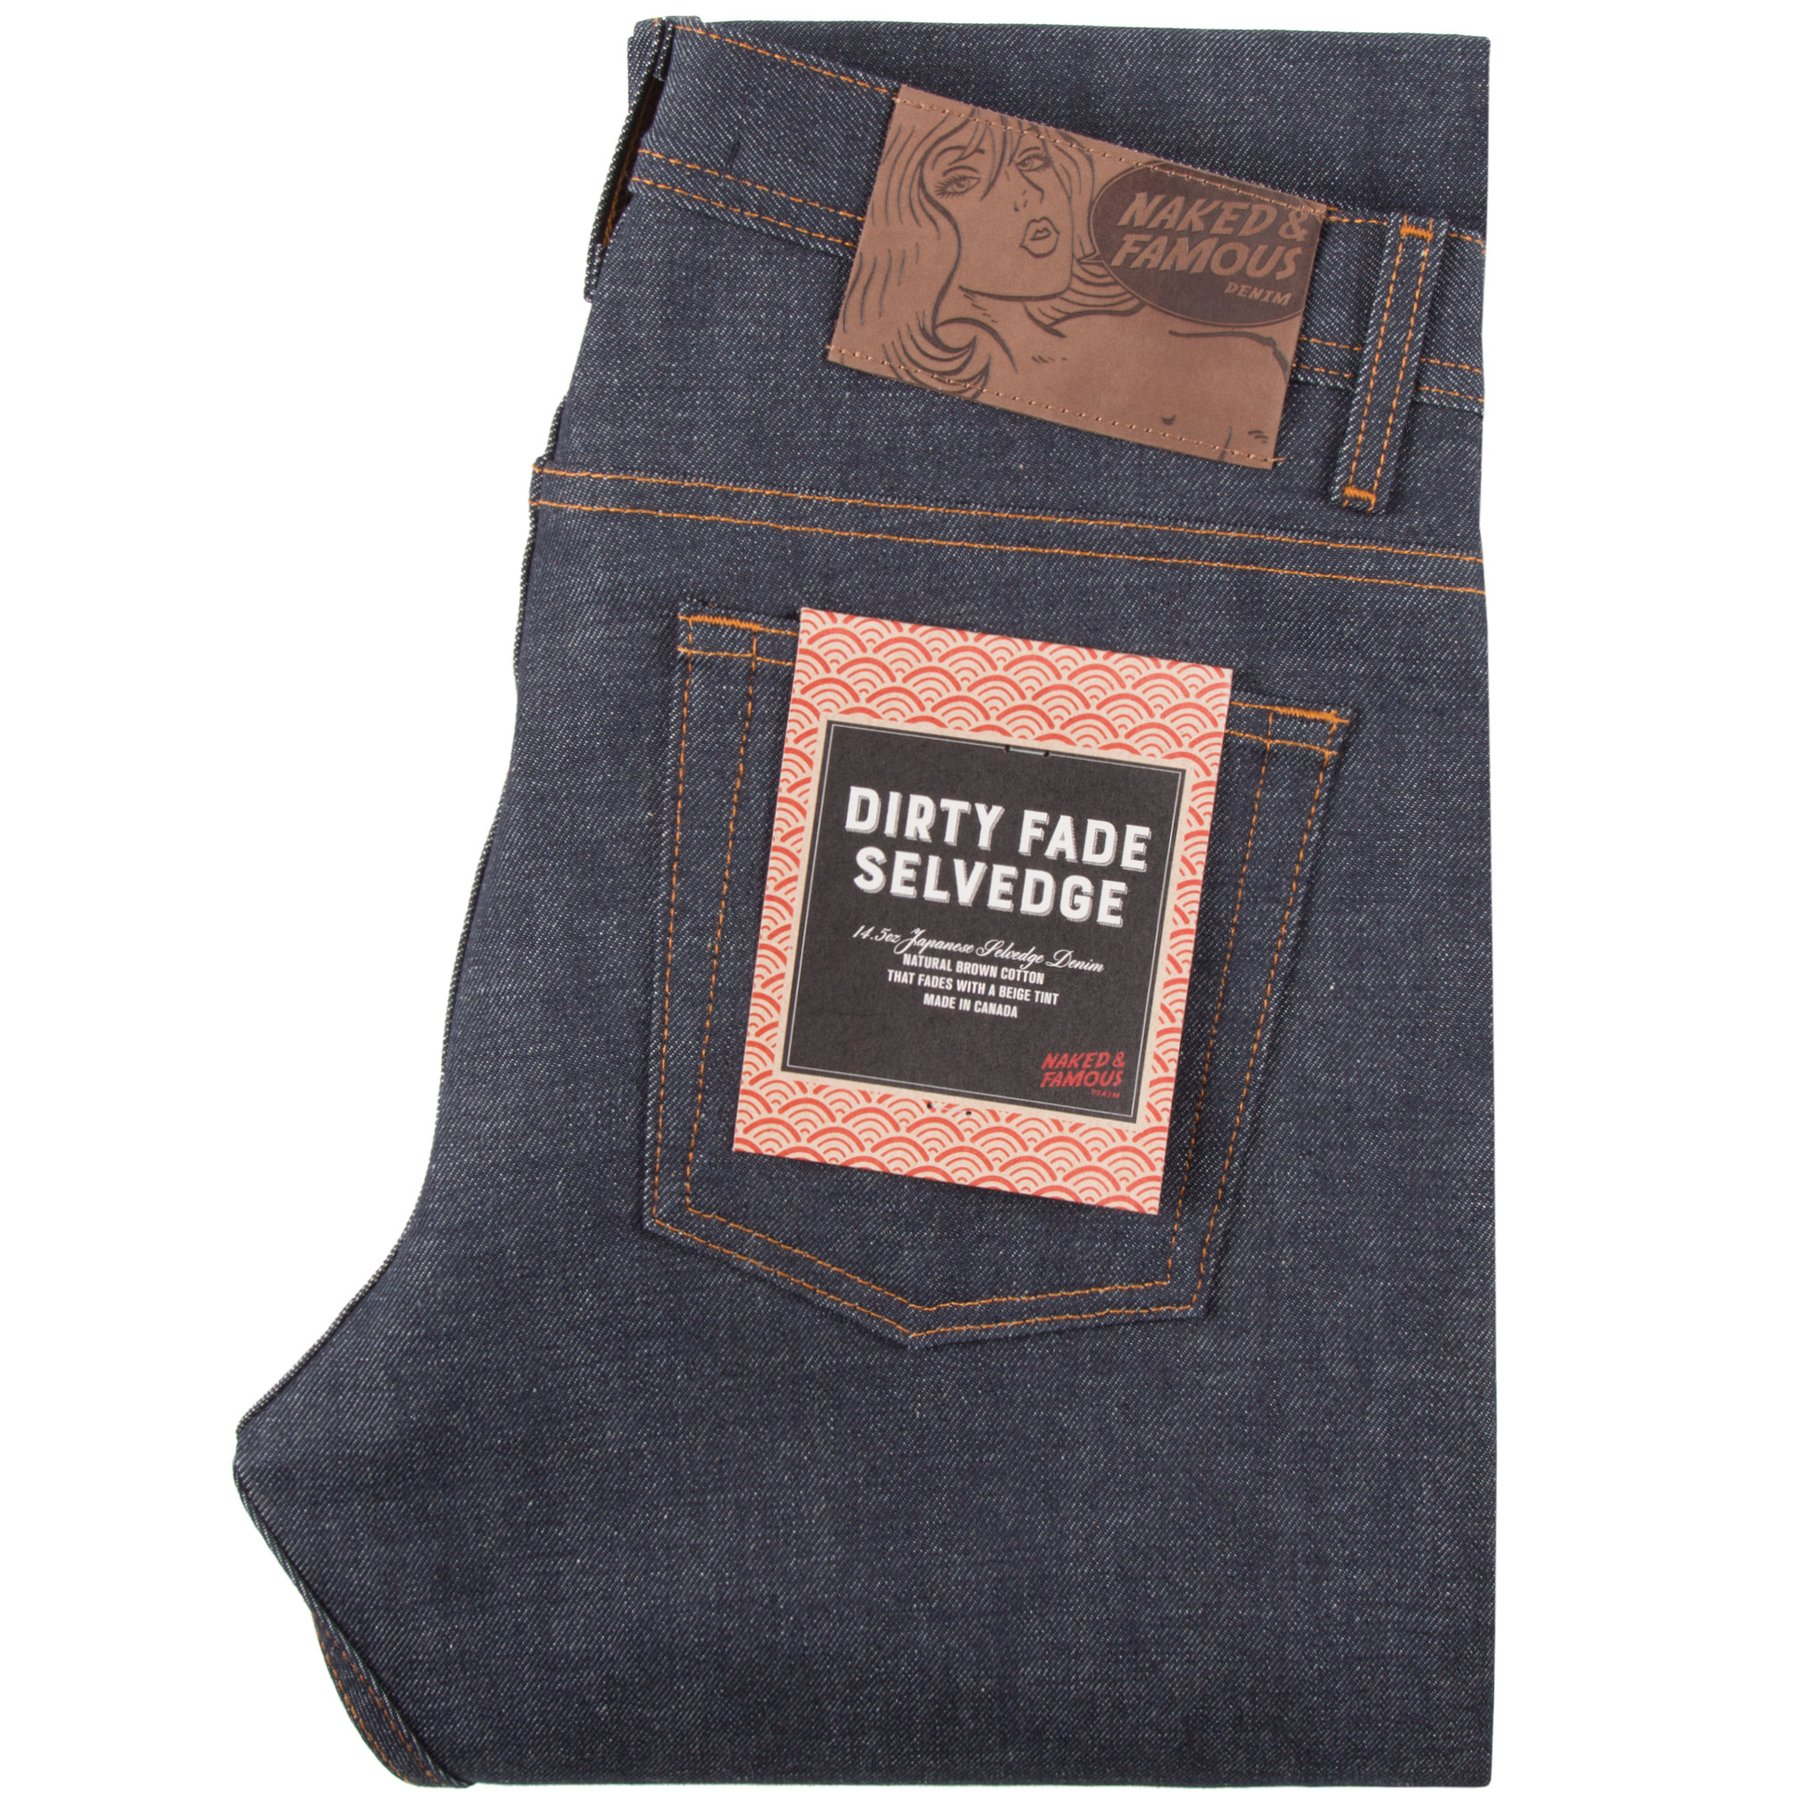 dirty fade selvedge - Super Guy / Weird Guy / Easy Guy / Skinny Guy